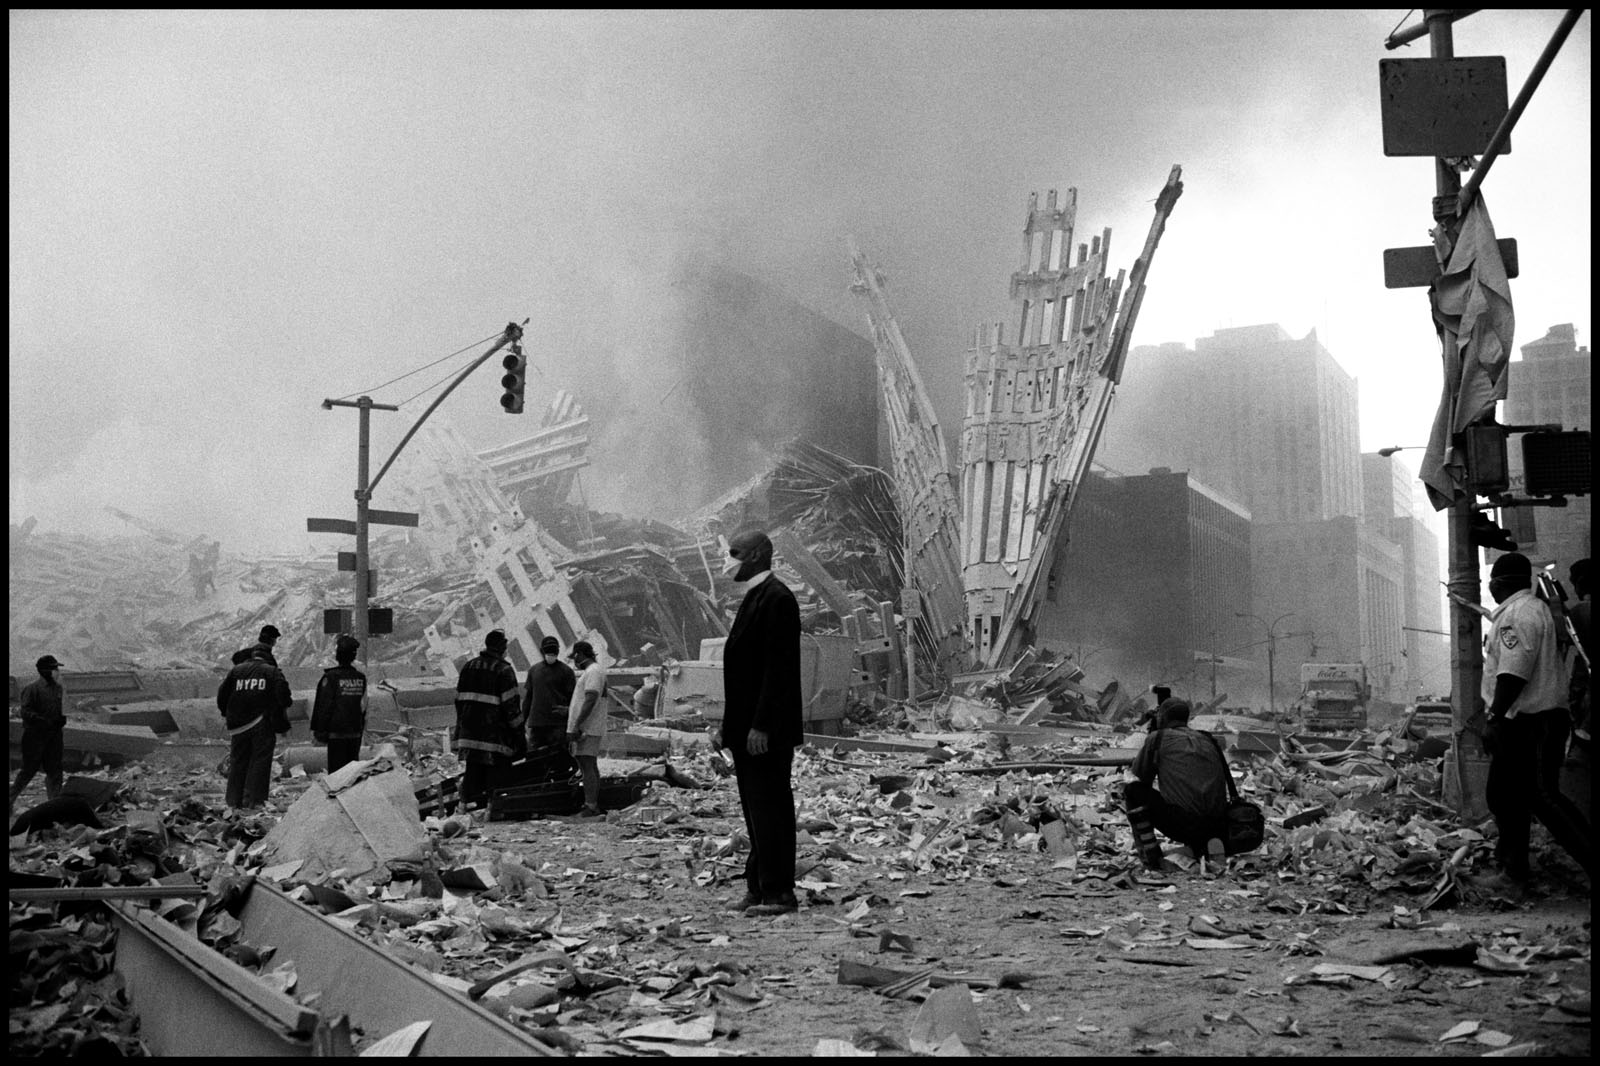 essay u s department of > photos > photo essays  photo essay from to ground zero a church minister stands amid the wreckage of new york